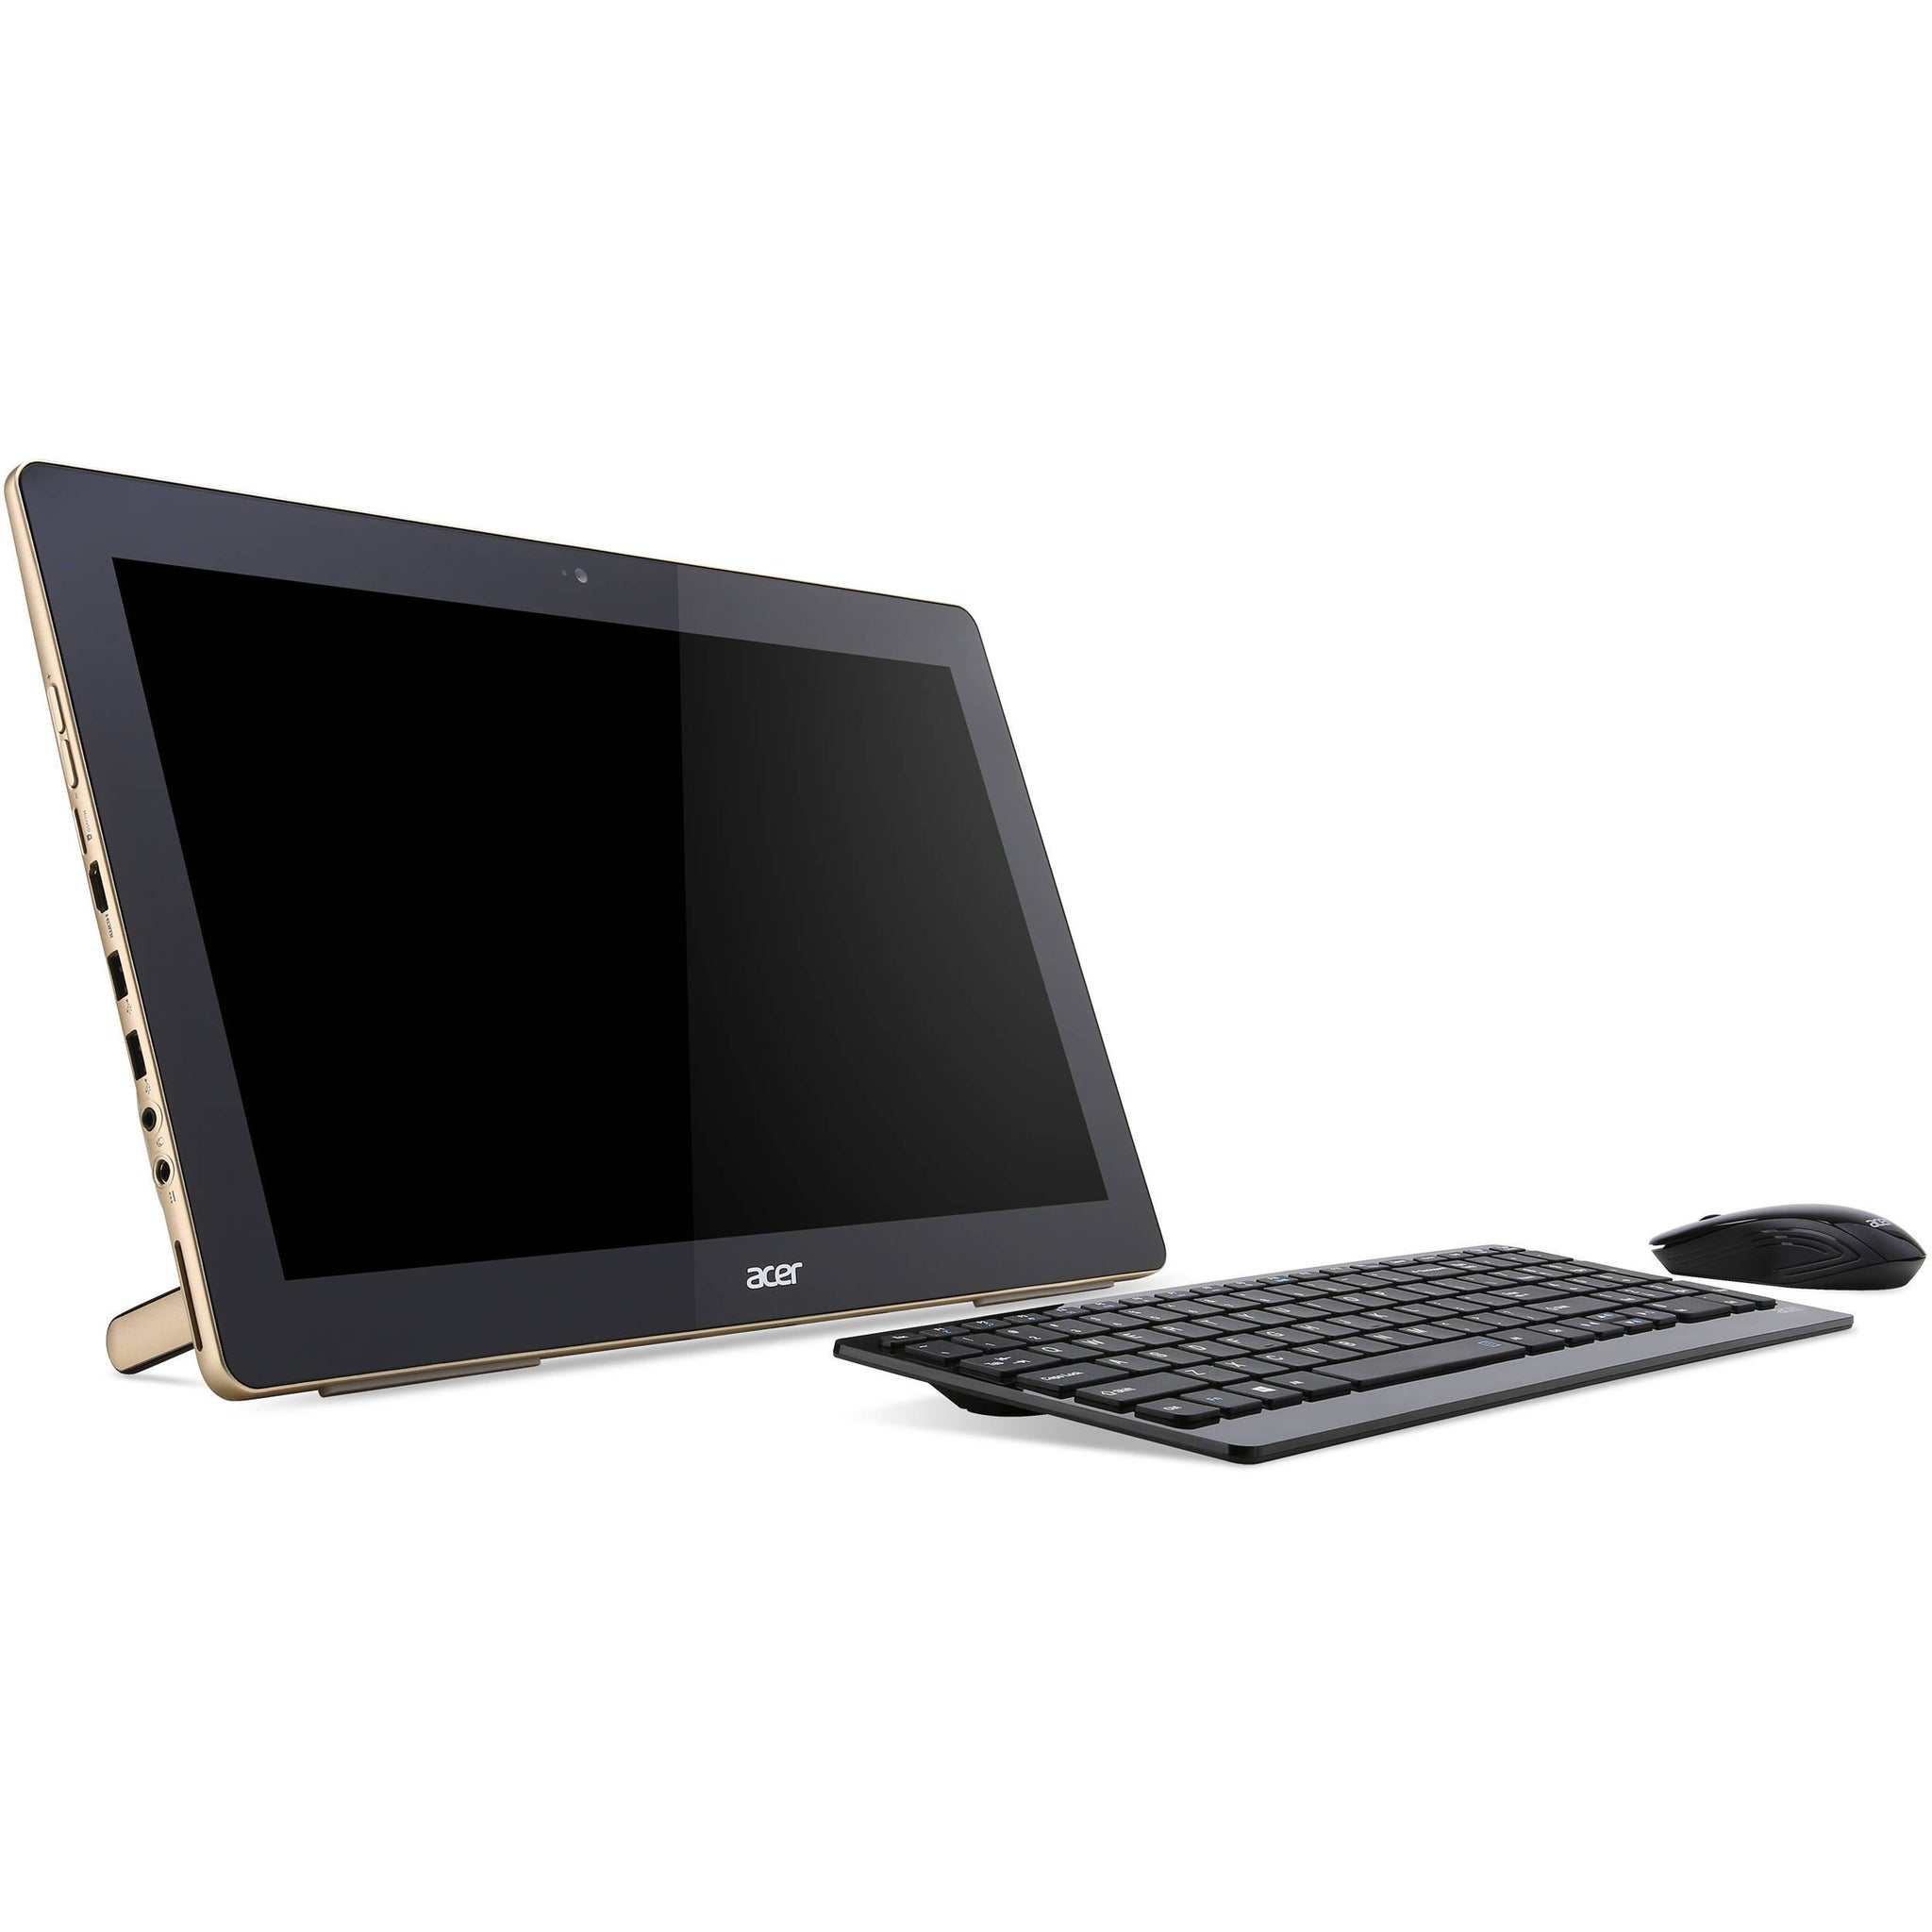 "Acer 17.3"" Aspire AZ3 Multi-Touch Portable All-in-One Desktop Computer"